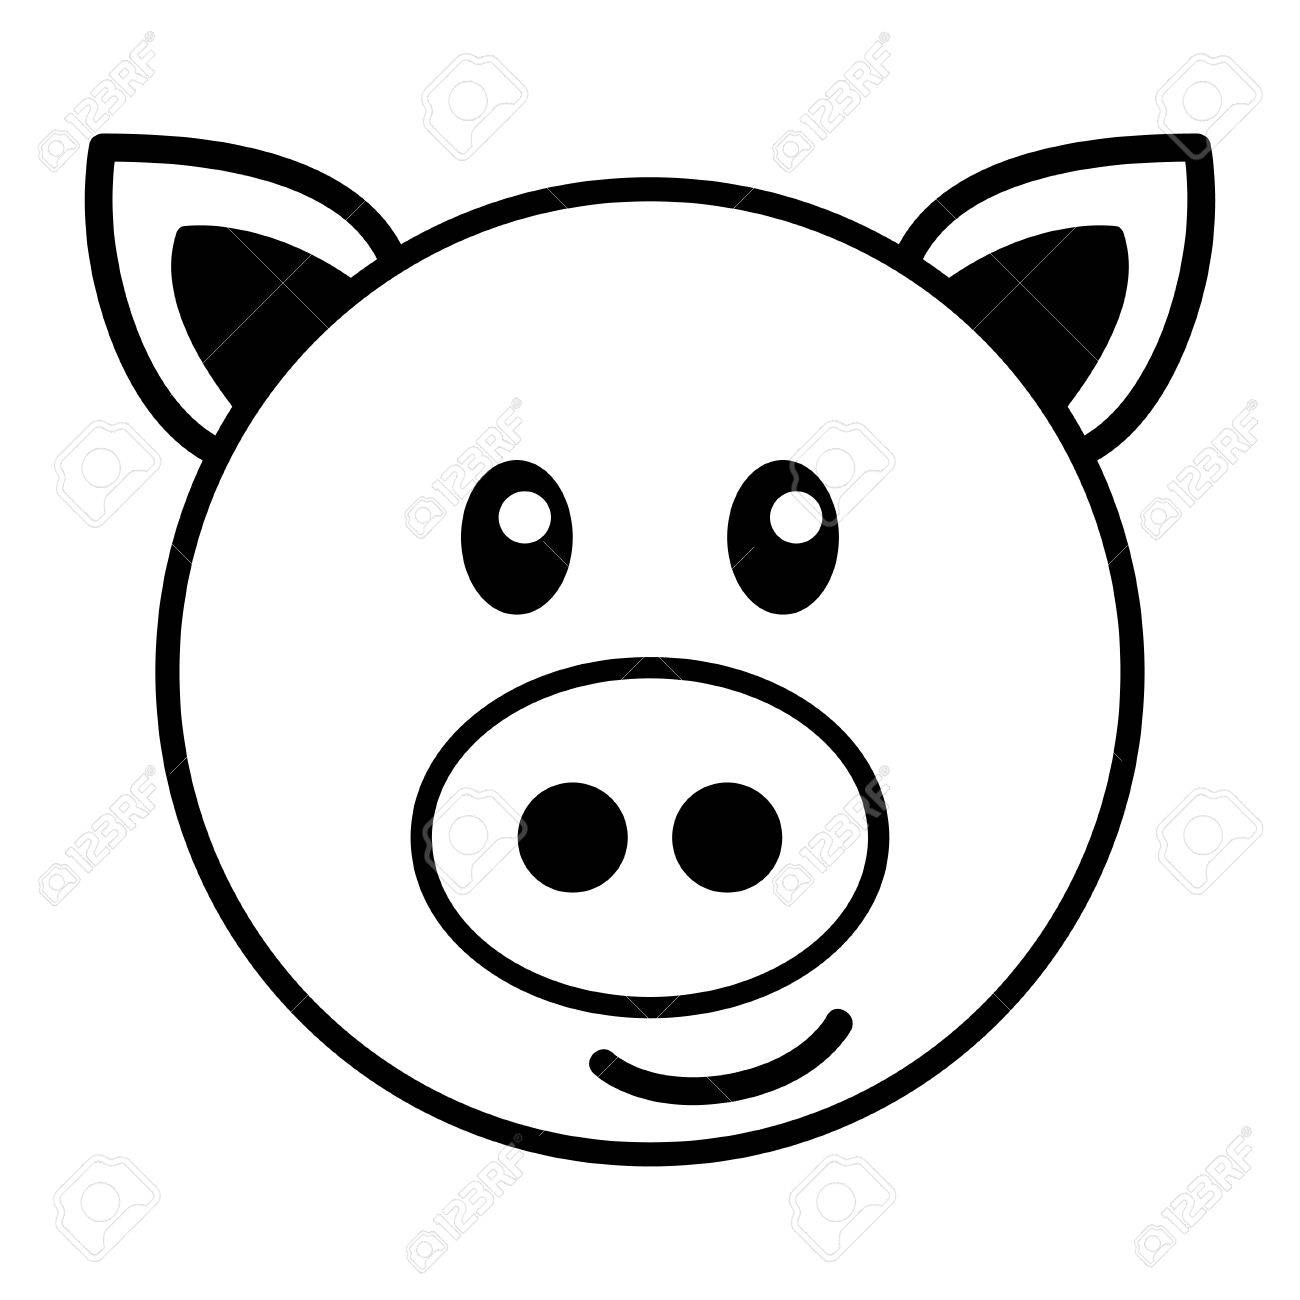 how to draw a pig simple